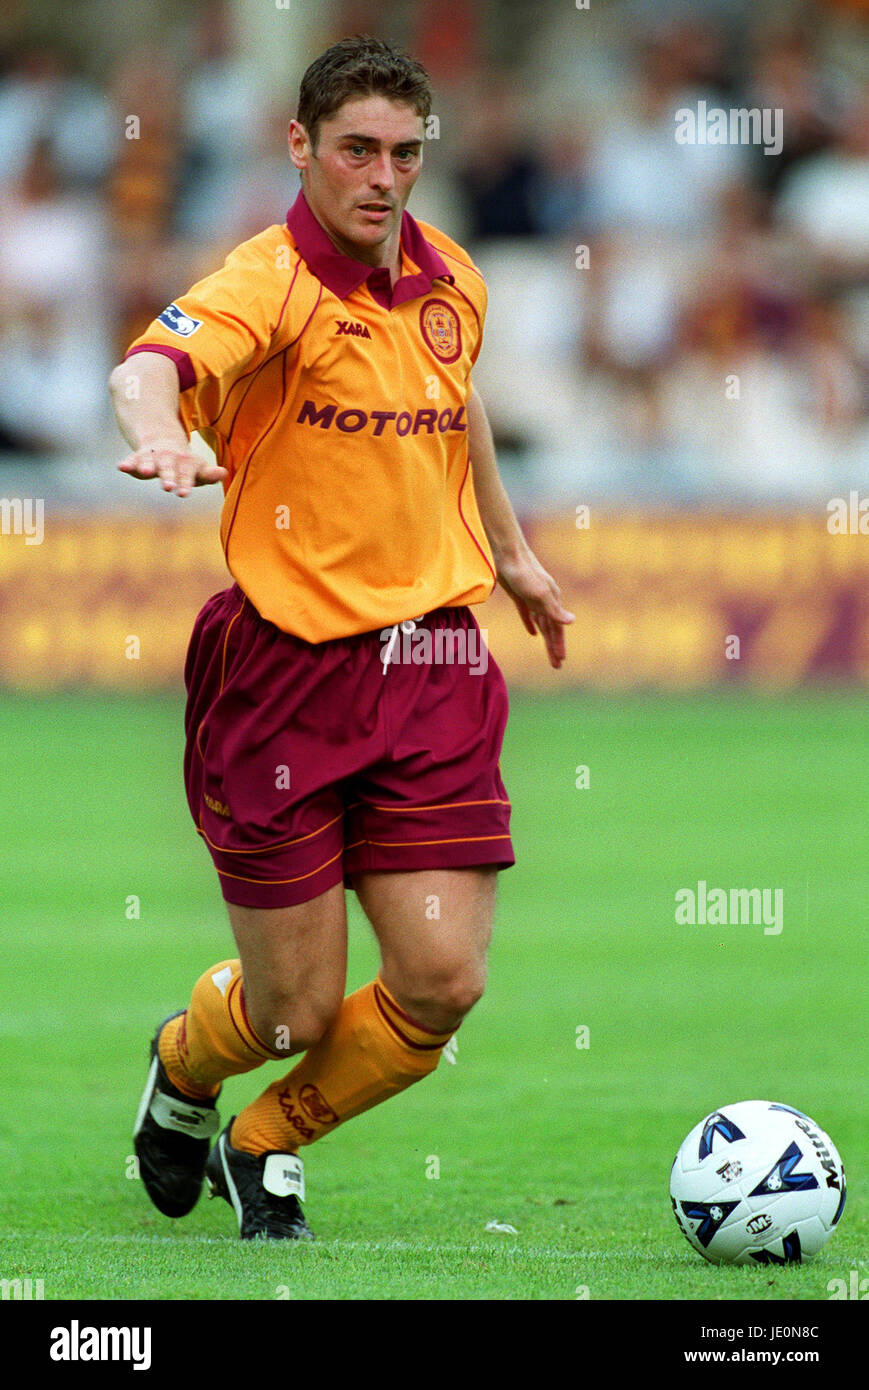 SCOTT LEITCH MOTHERWELL FC MOTHERWELL 27 August 2000 - Stock Image